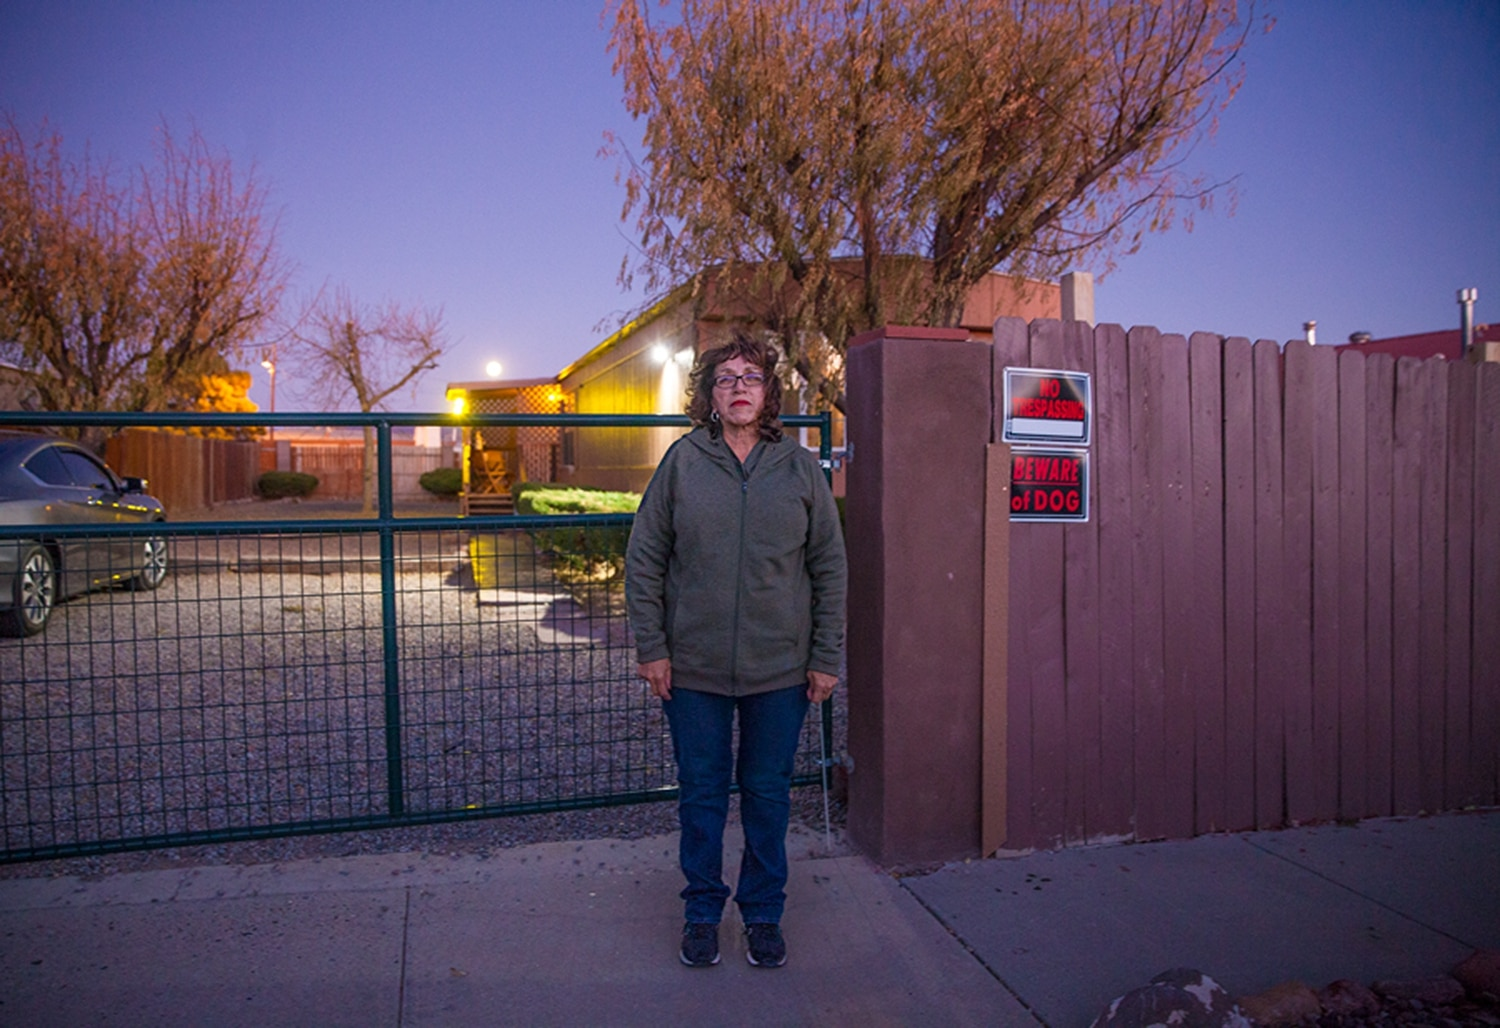 Helen Chavez lives in a mobile home park right off of Airport Road and hopes the city will help bring in more services for the area.